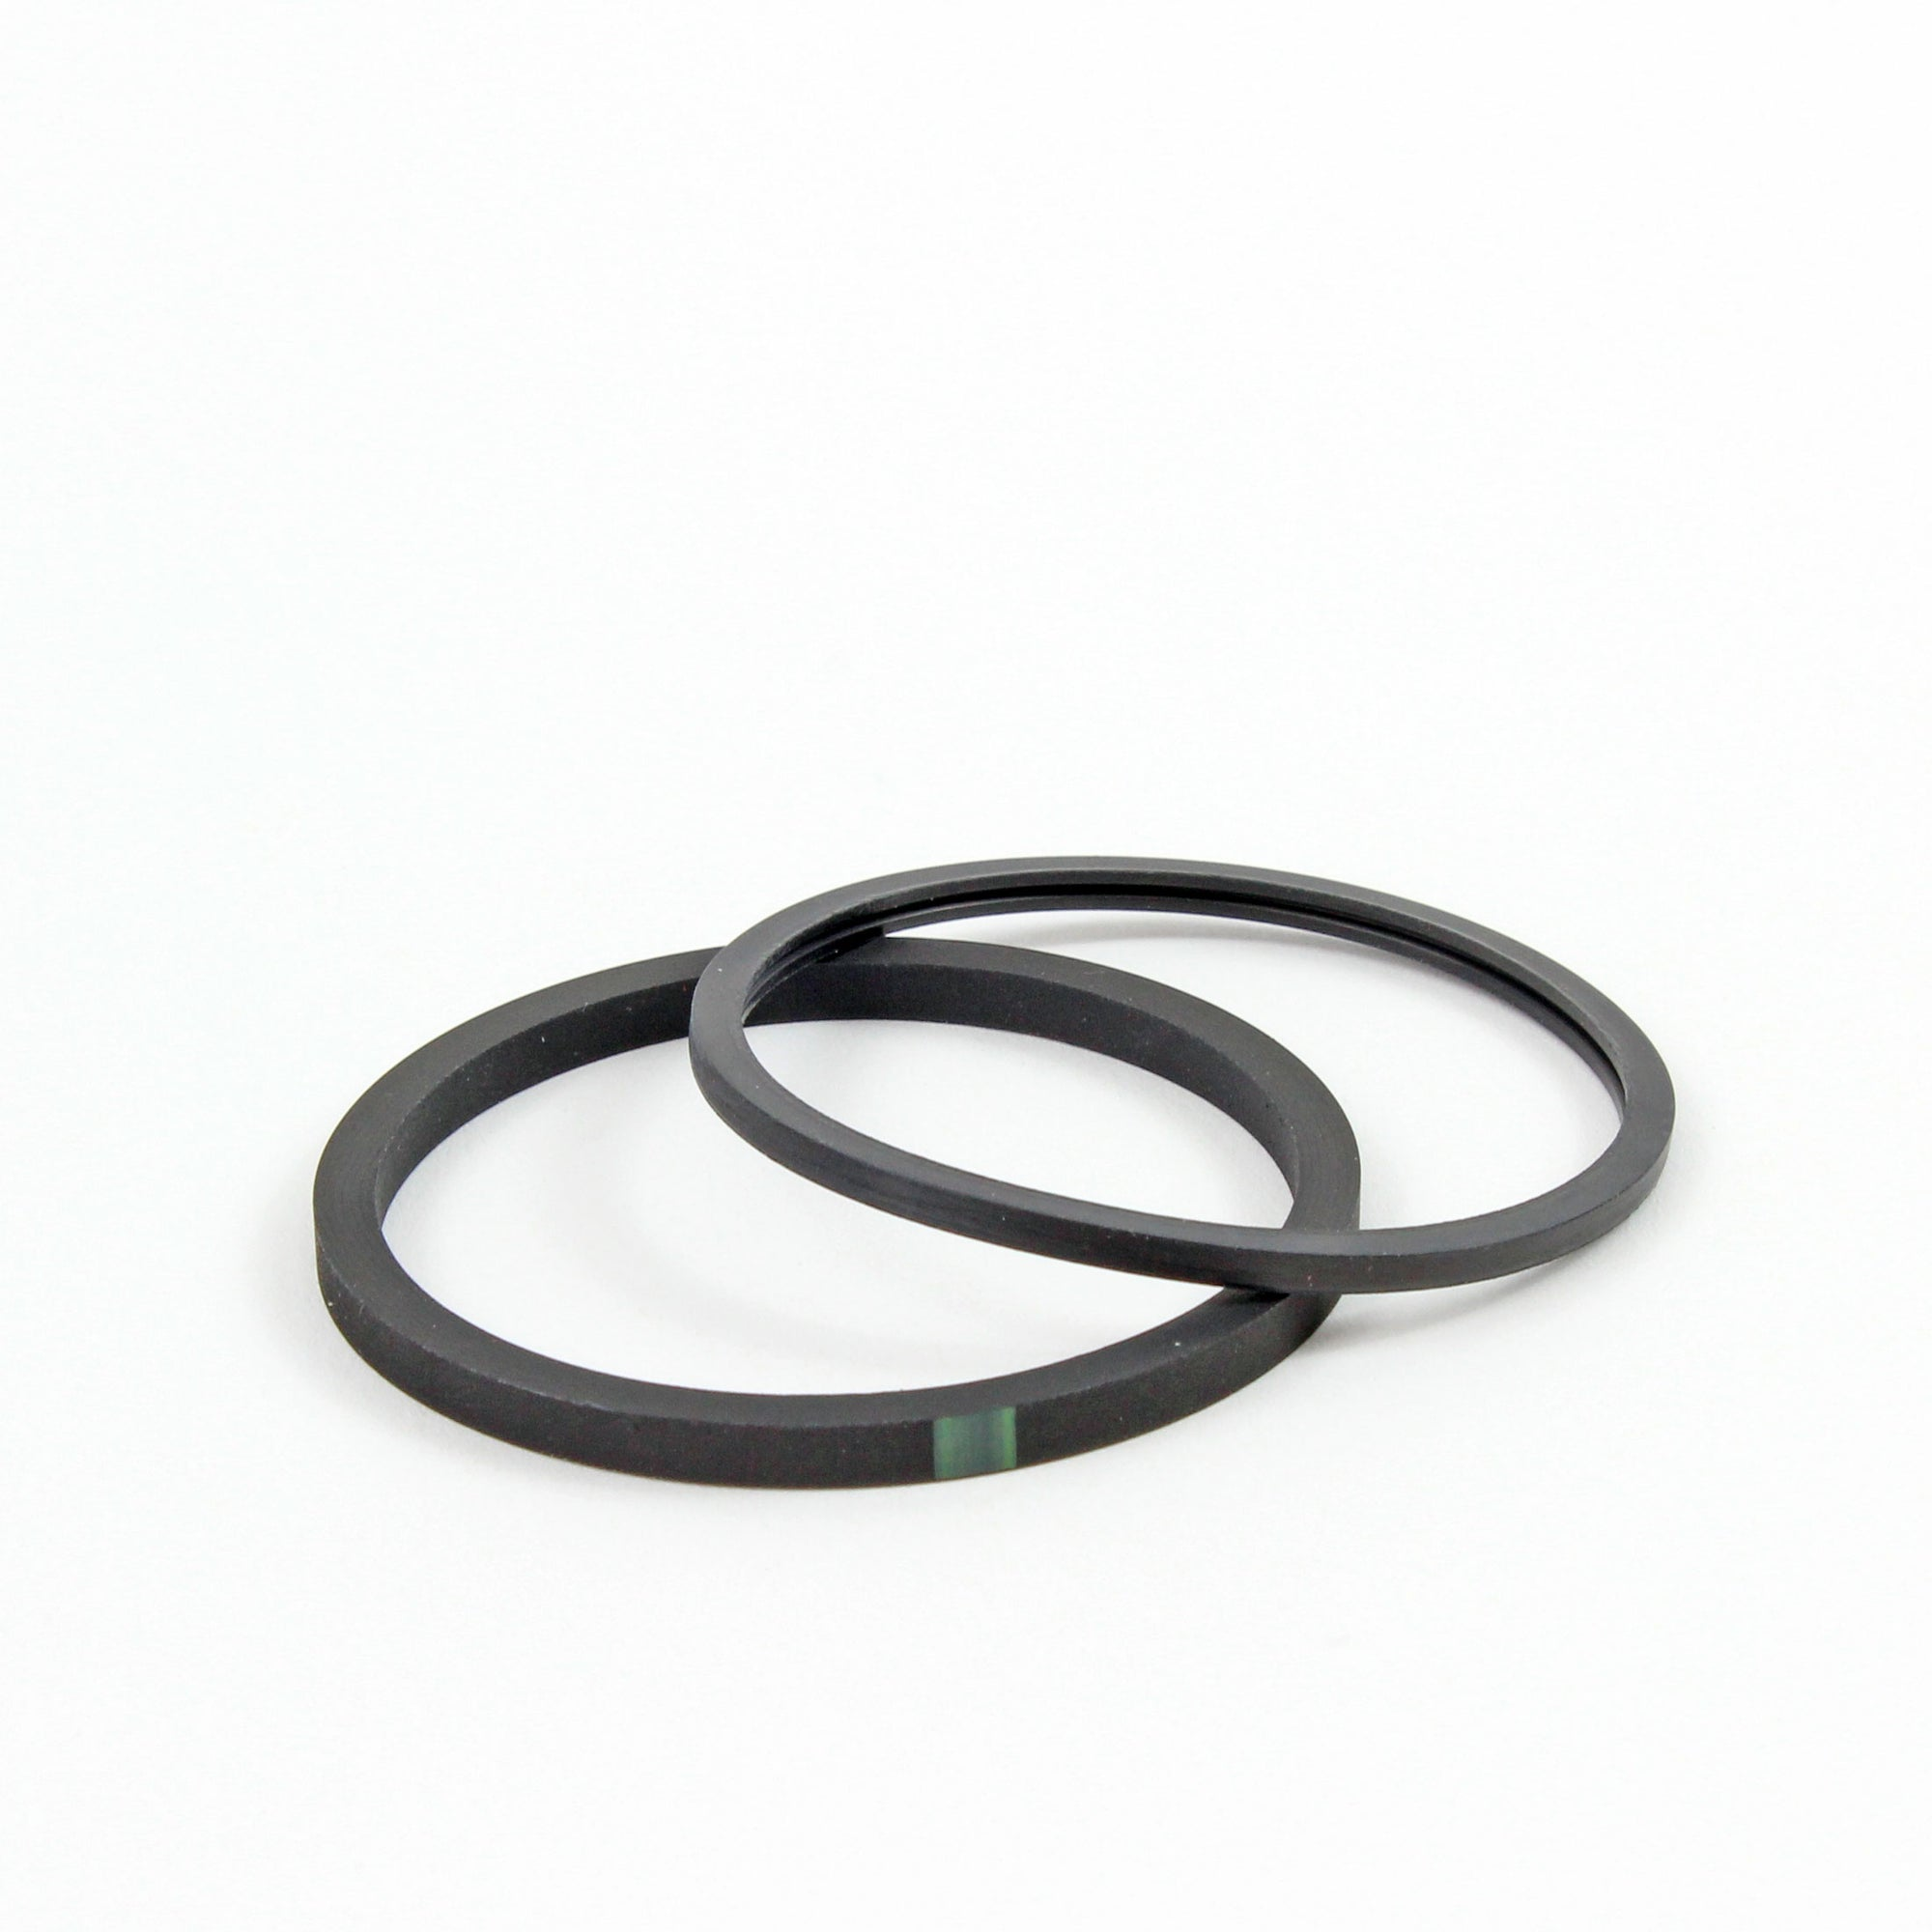 Internal Diameter (I.D) 45.3mm - Motorcycle Brake Caliper Seal set (Pressure seal - Dust Seal)